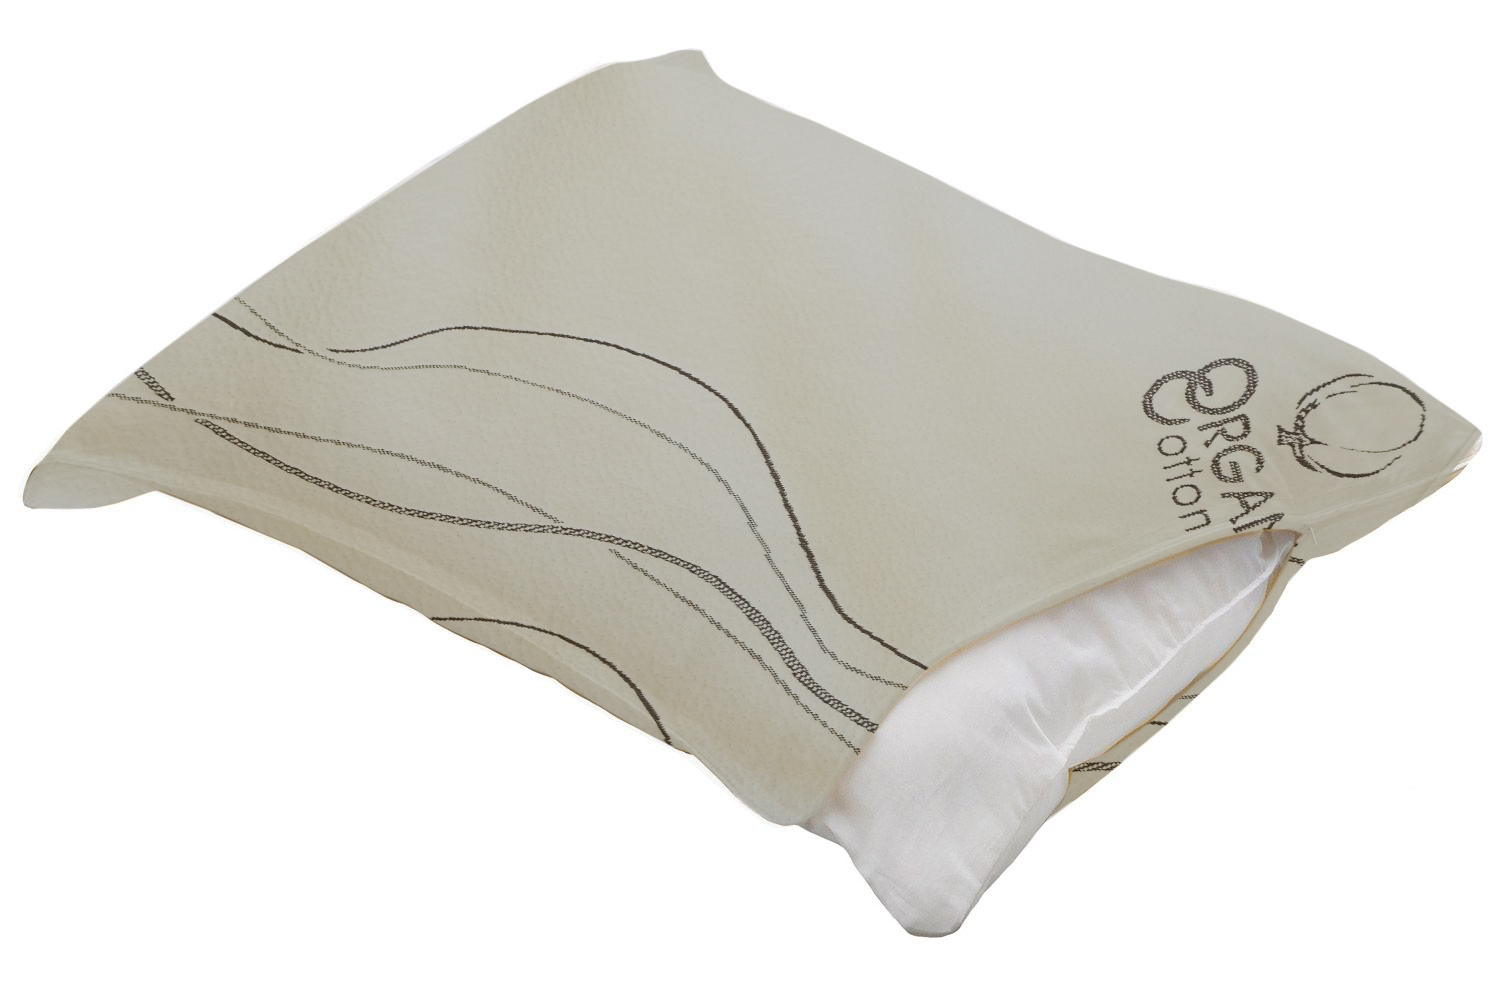 Organic Cotton Pillow Protector Case - Comes In All Pillow Sizes